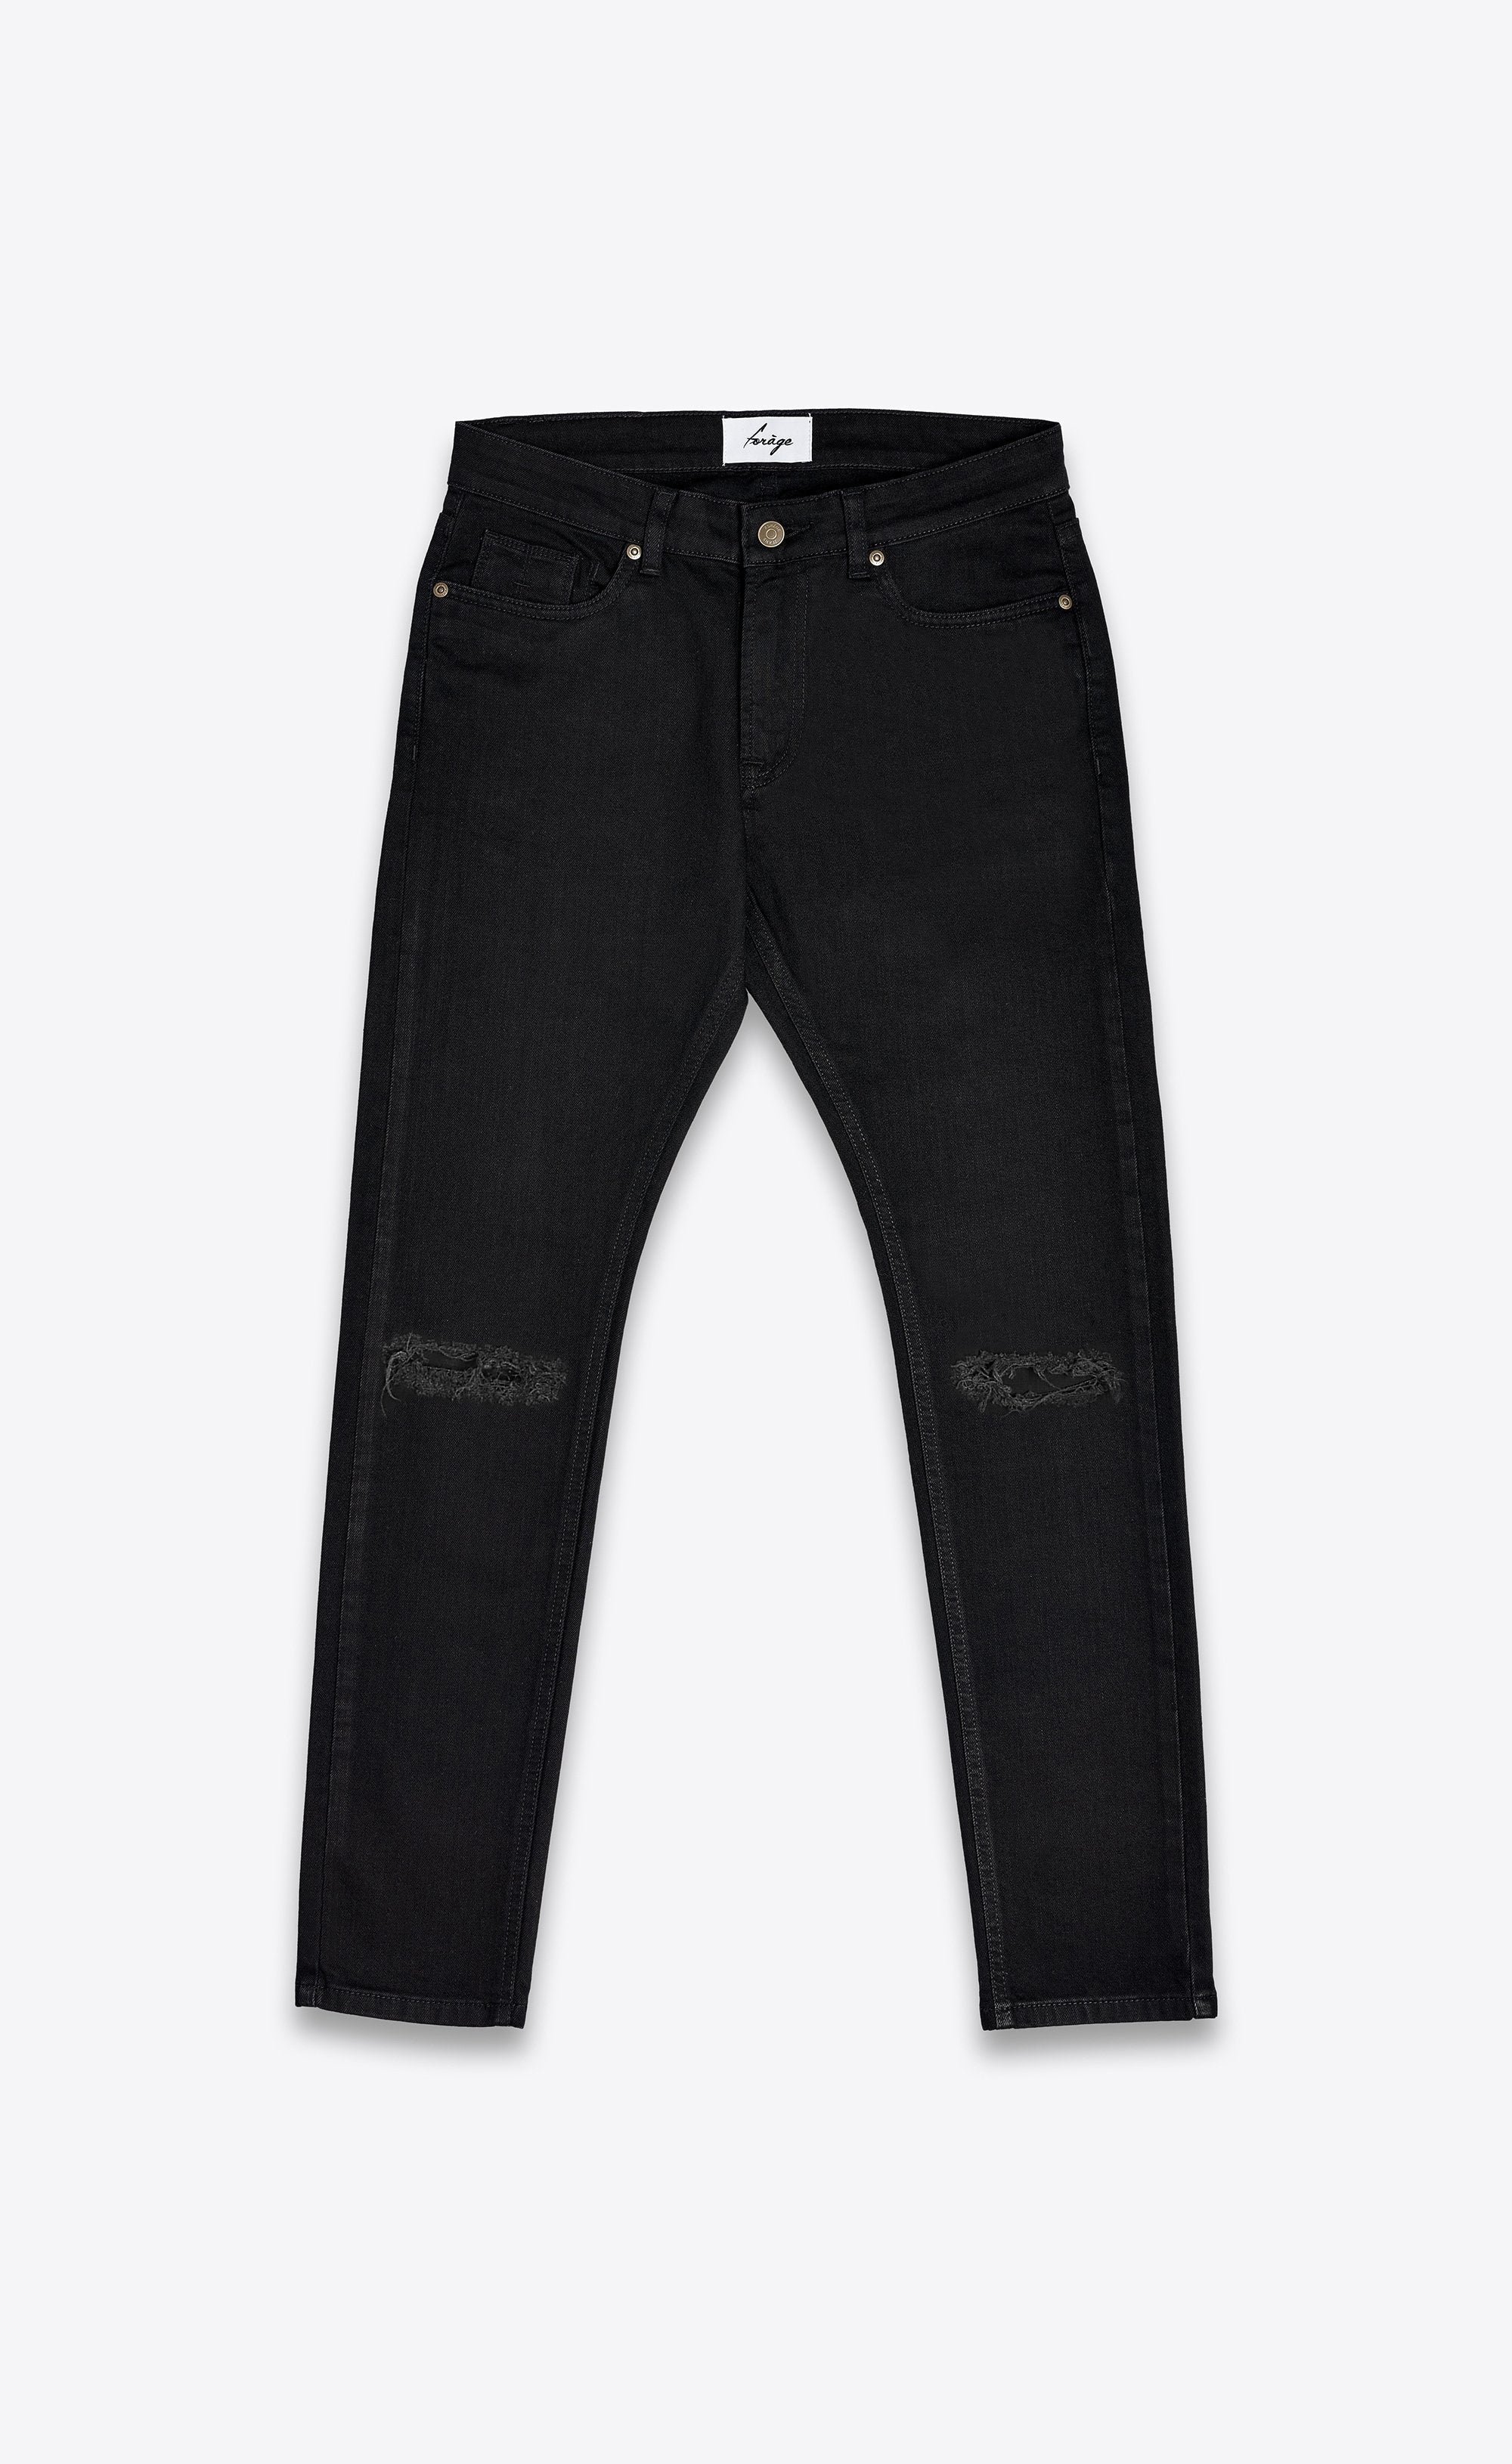 DESTROYED SKINNY JEANS - BLACK - Forage-Clothing